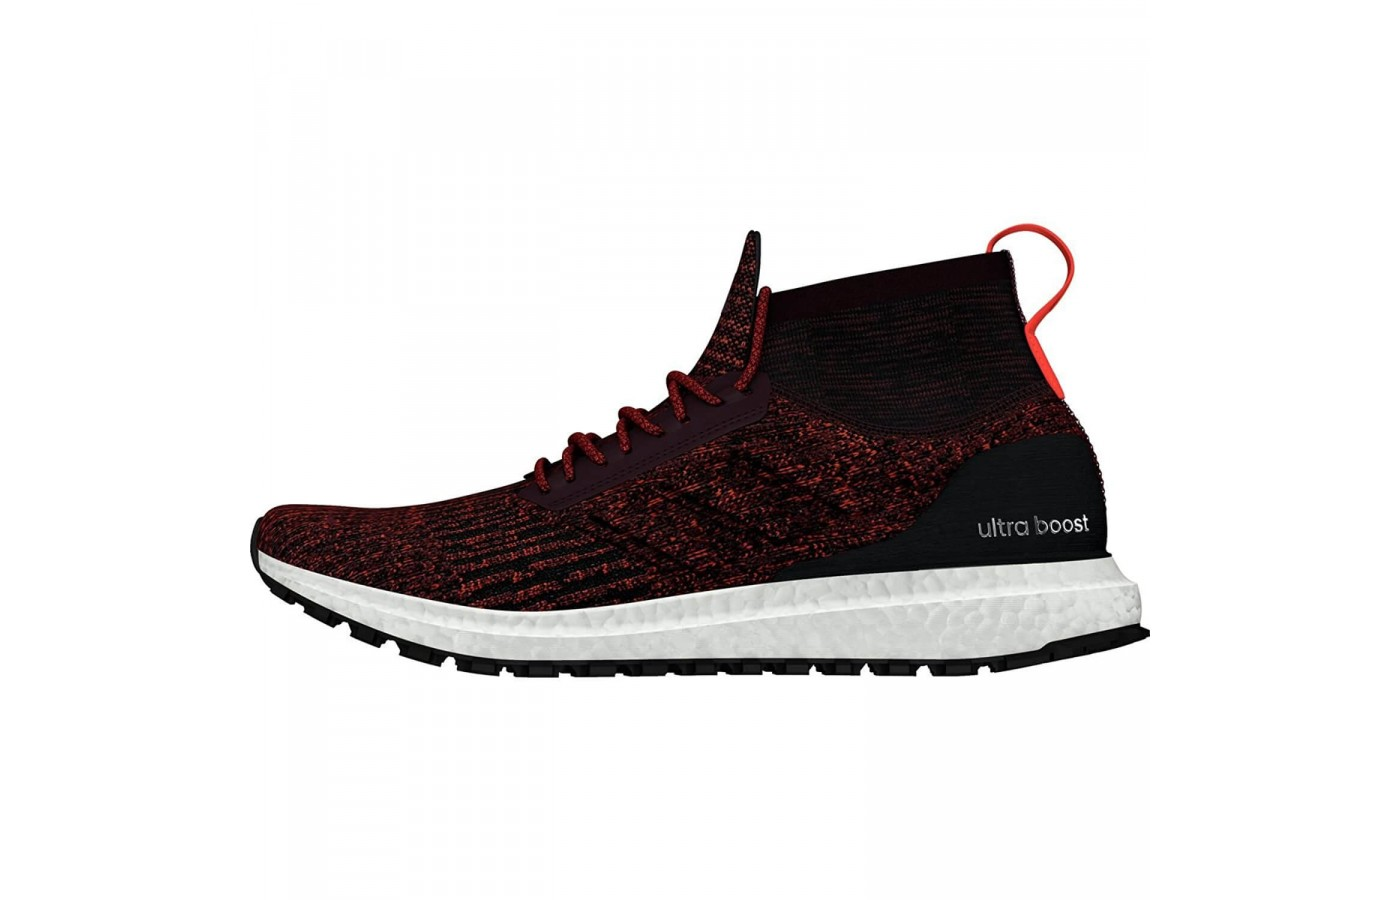 ff1754191 Adidas Ultraboost All Terrain - Buy or Not in May 2019